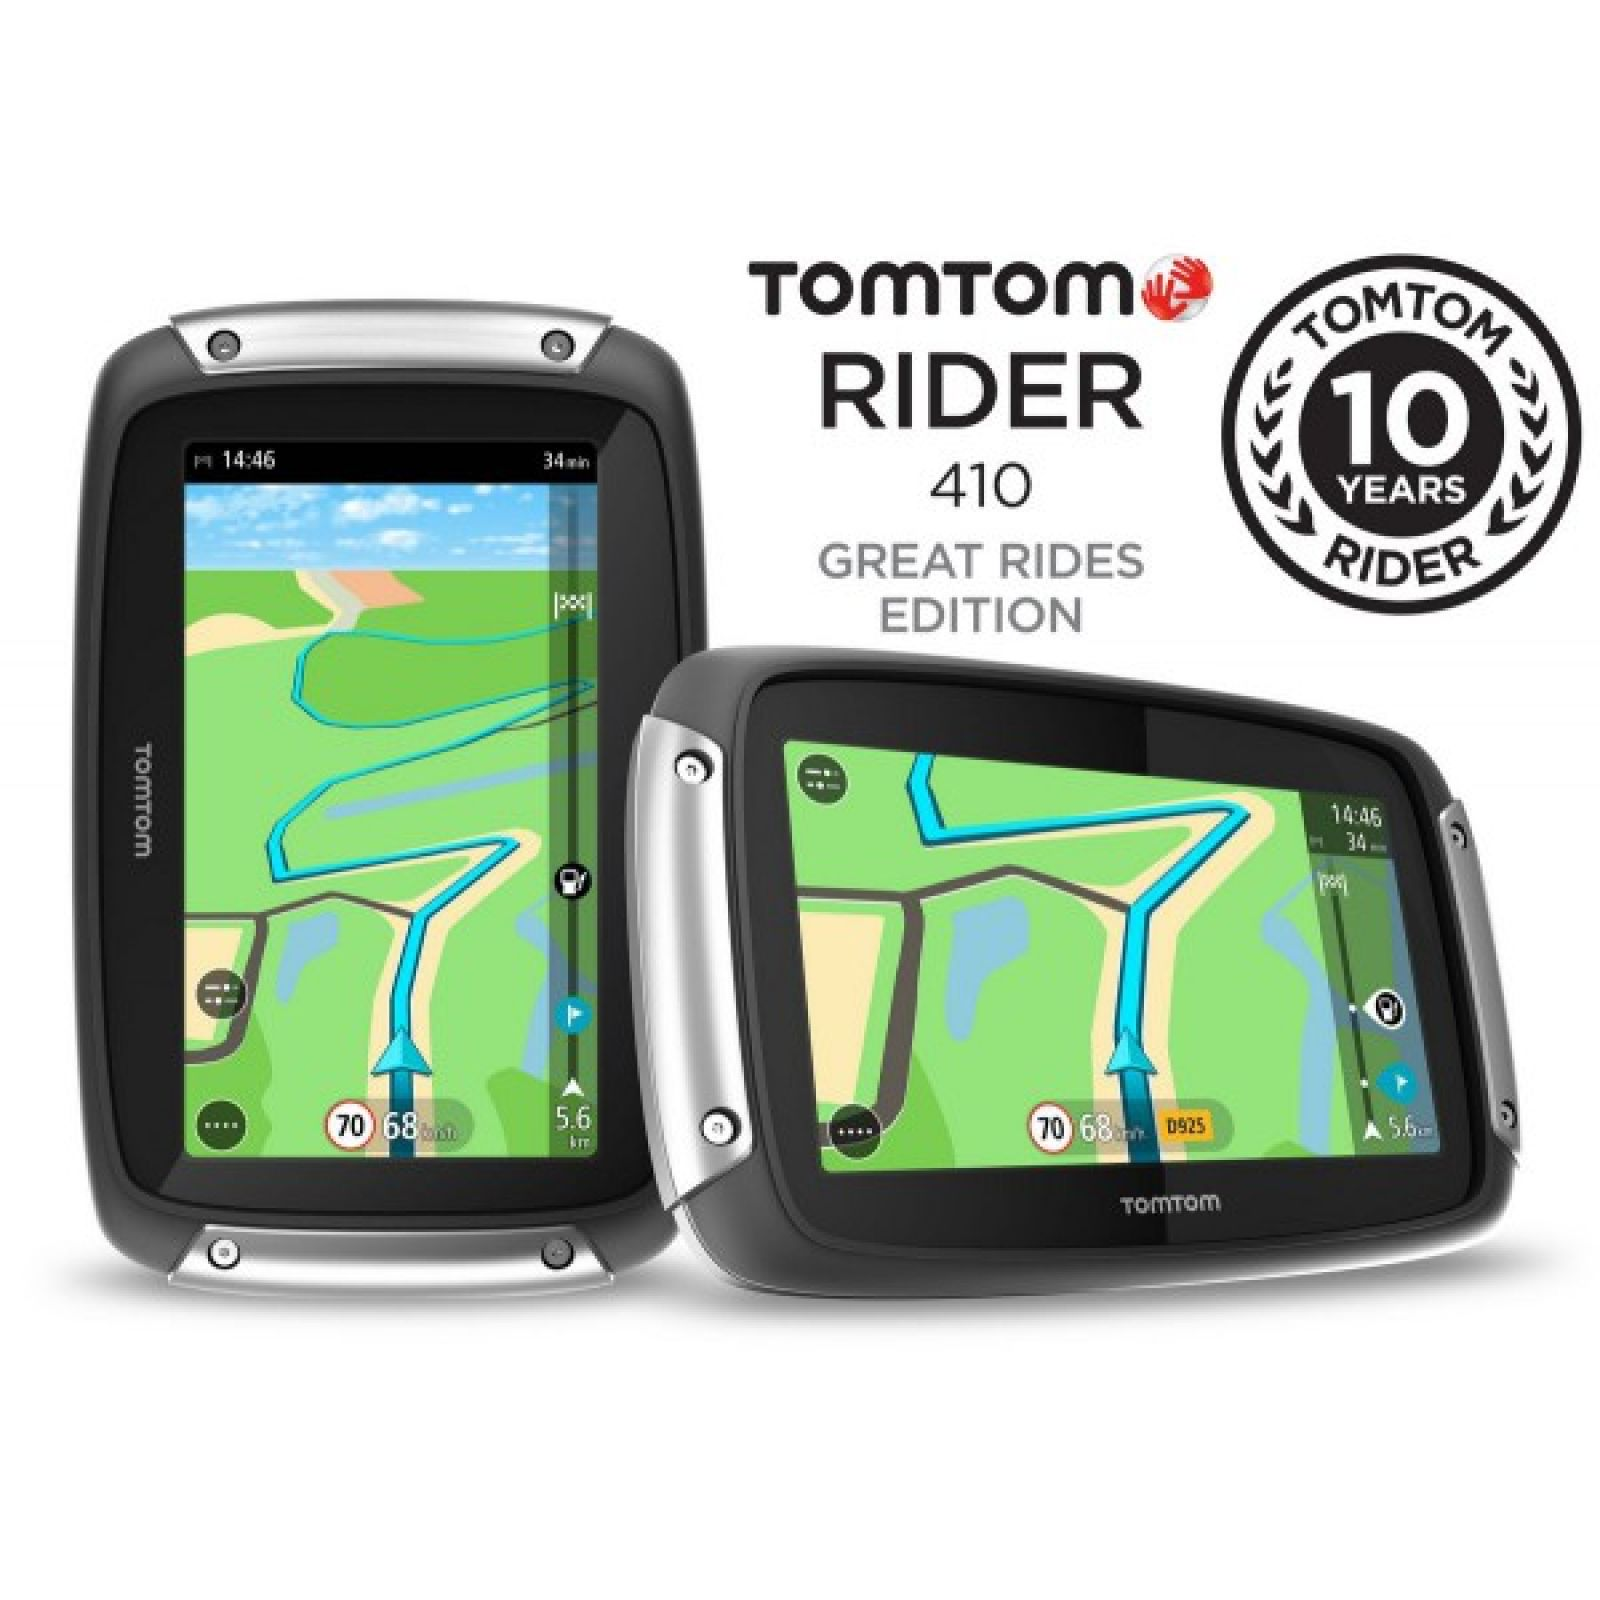 TOMTOM - Rider 410 - image d'illustration 1